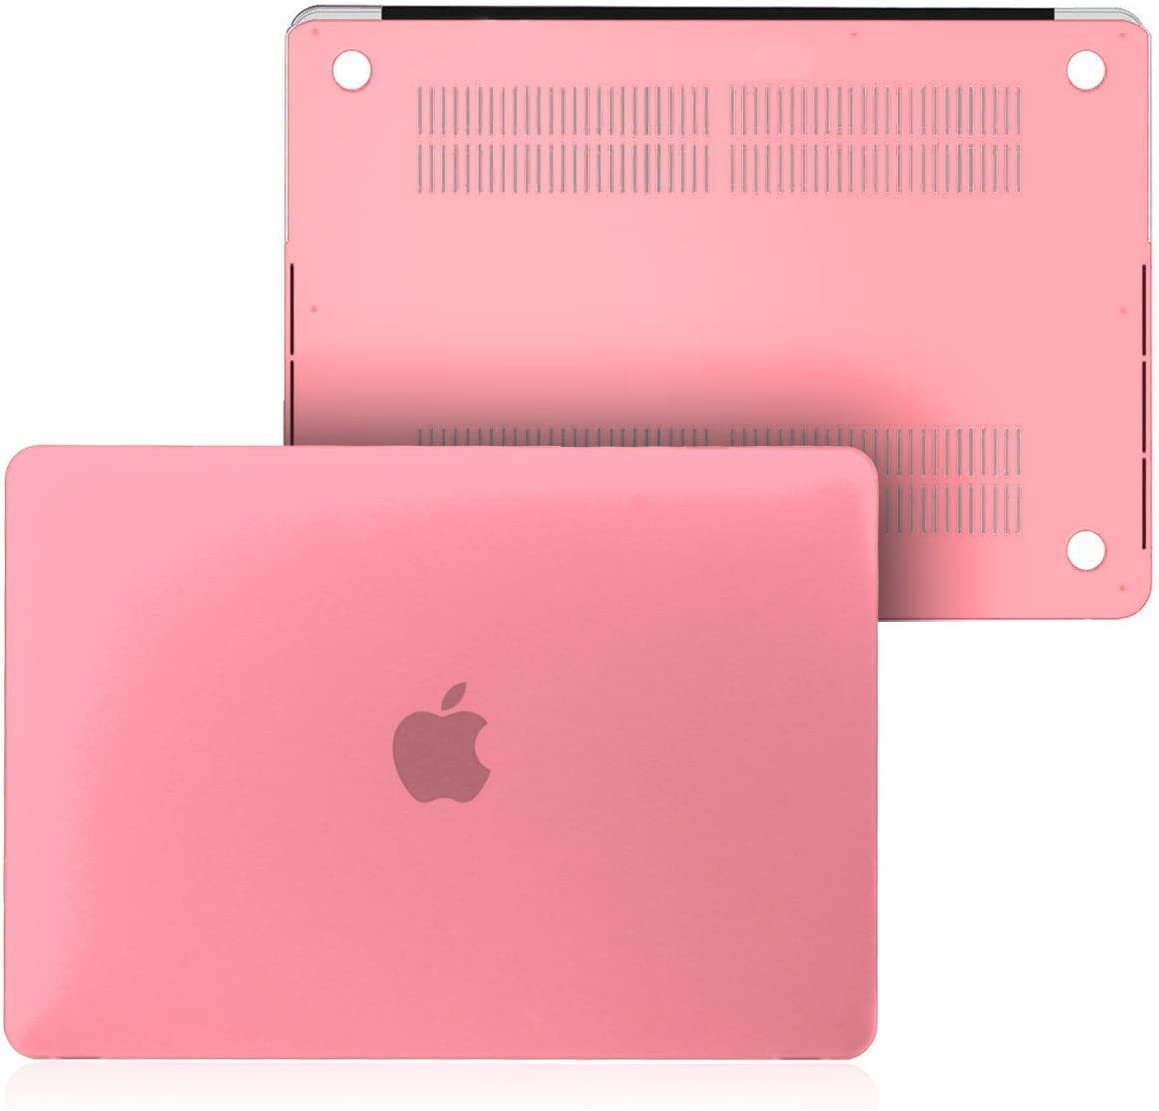 FINDING CASE BUNDLE 2 In 1 Rubberized Matte Plastic Hard Shell Case For MacBook Pro 15 inch with Retina Display A1398 No CD-Rom Hot pink Case UK//EU layout Keyboard Cover